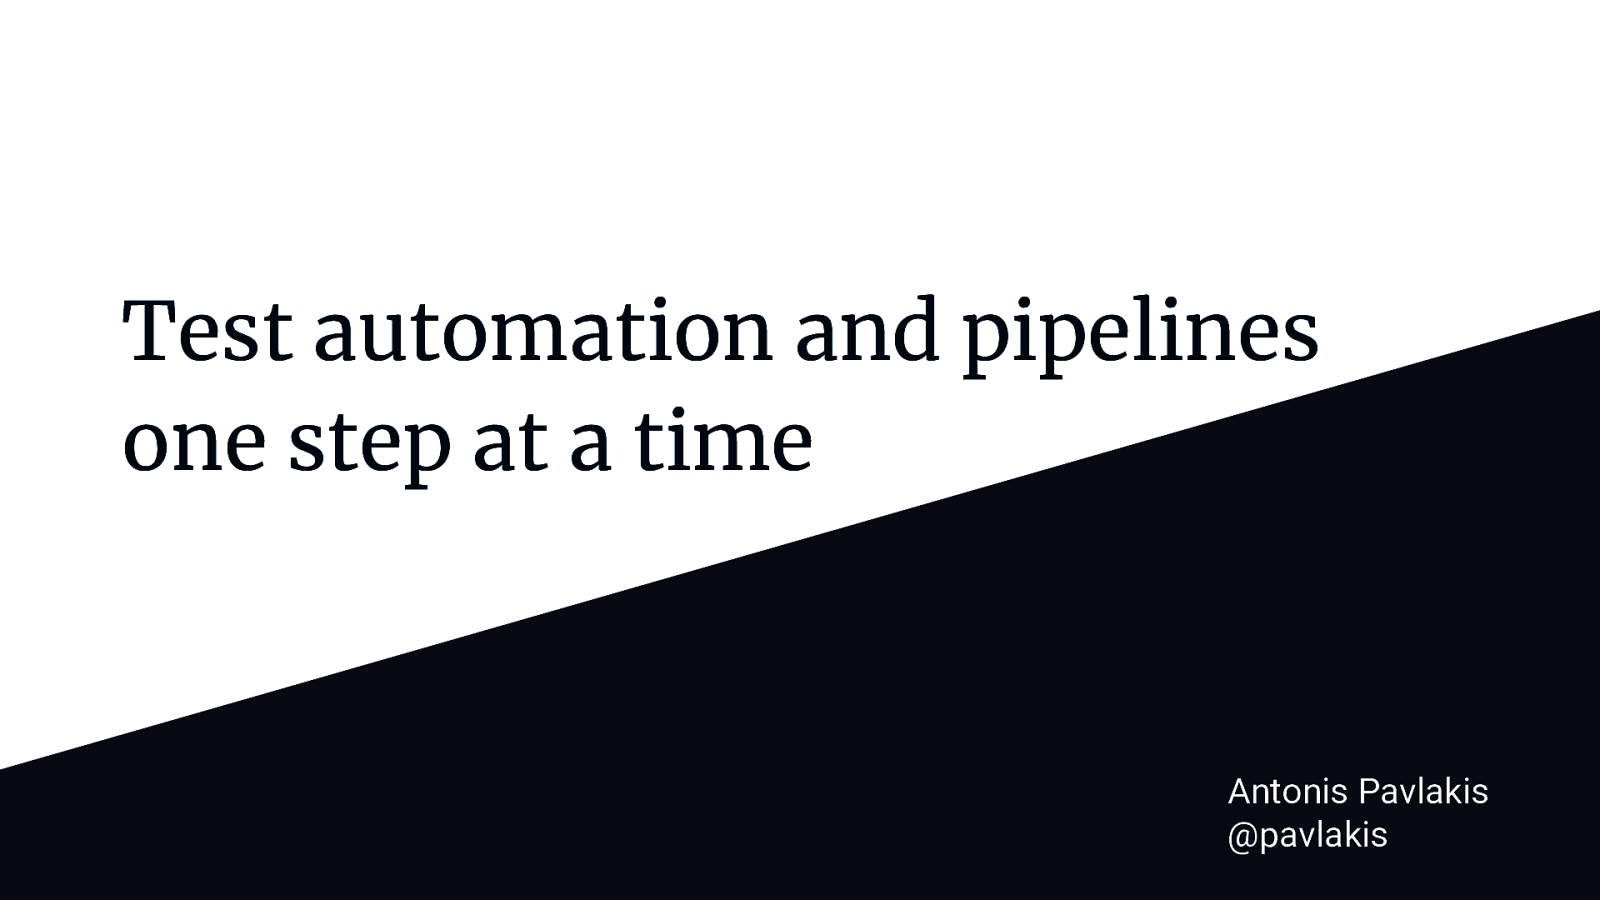 Test automation and pipelines: one step at a time